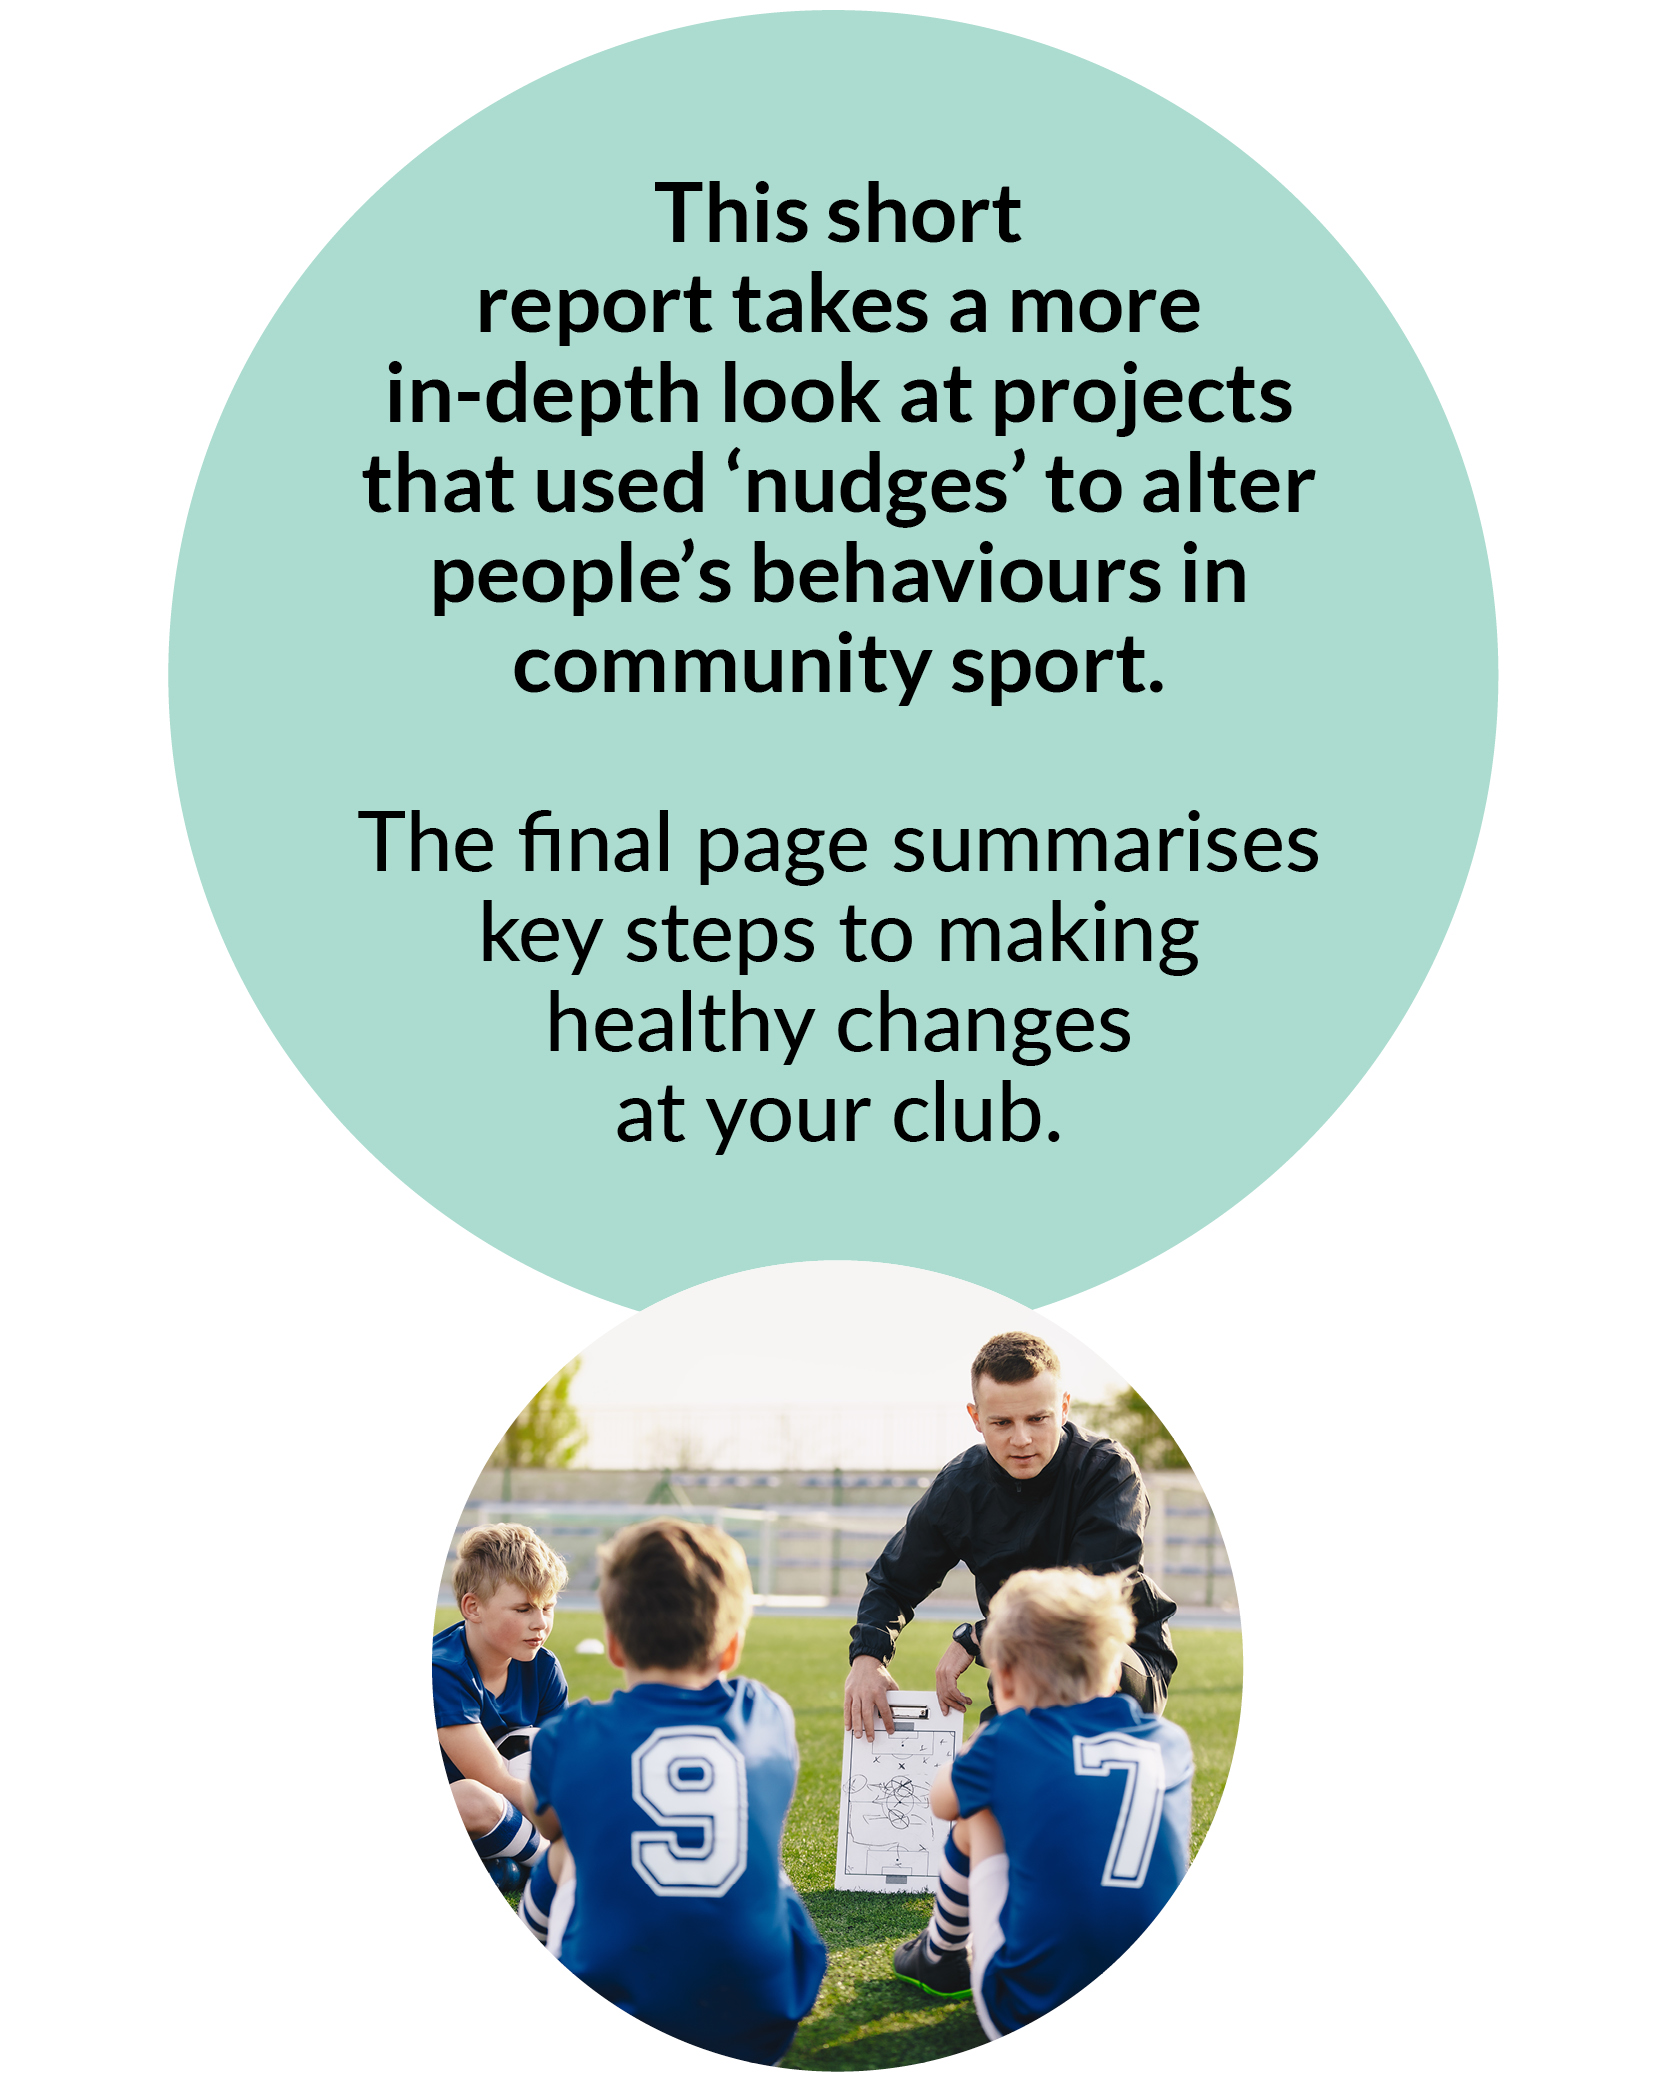 Healthy Food and Drink Choices in Community Sport